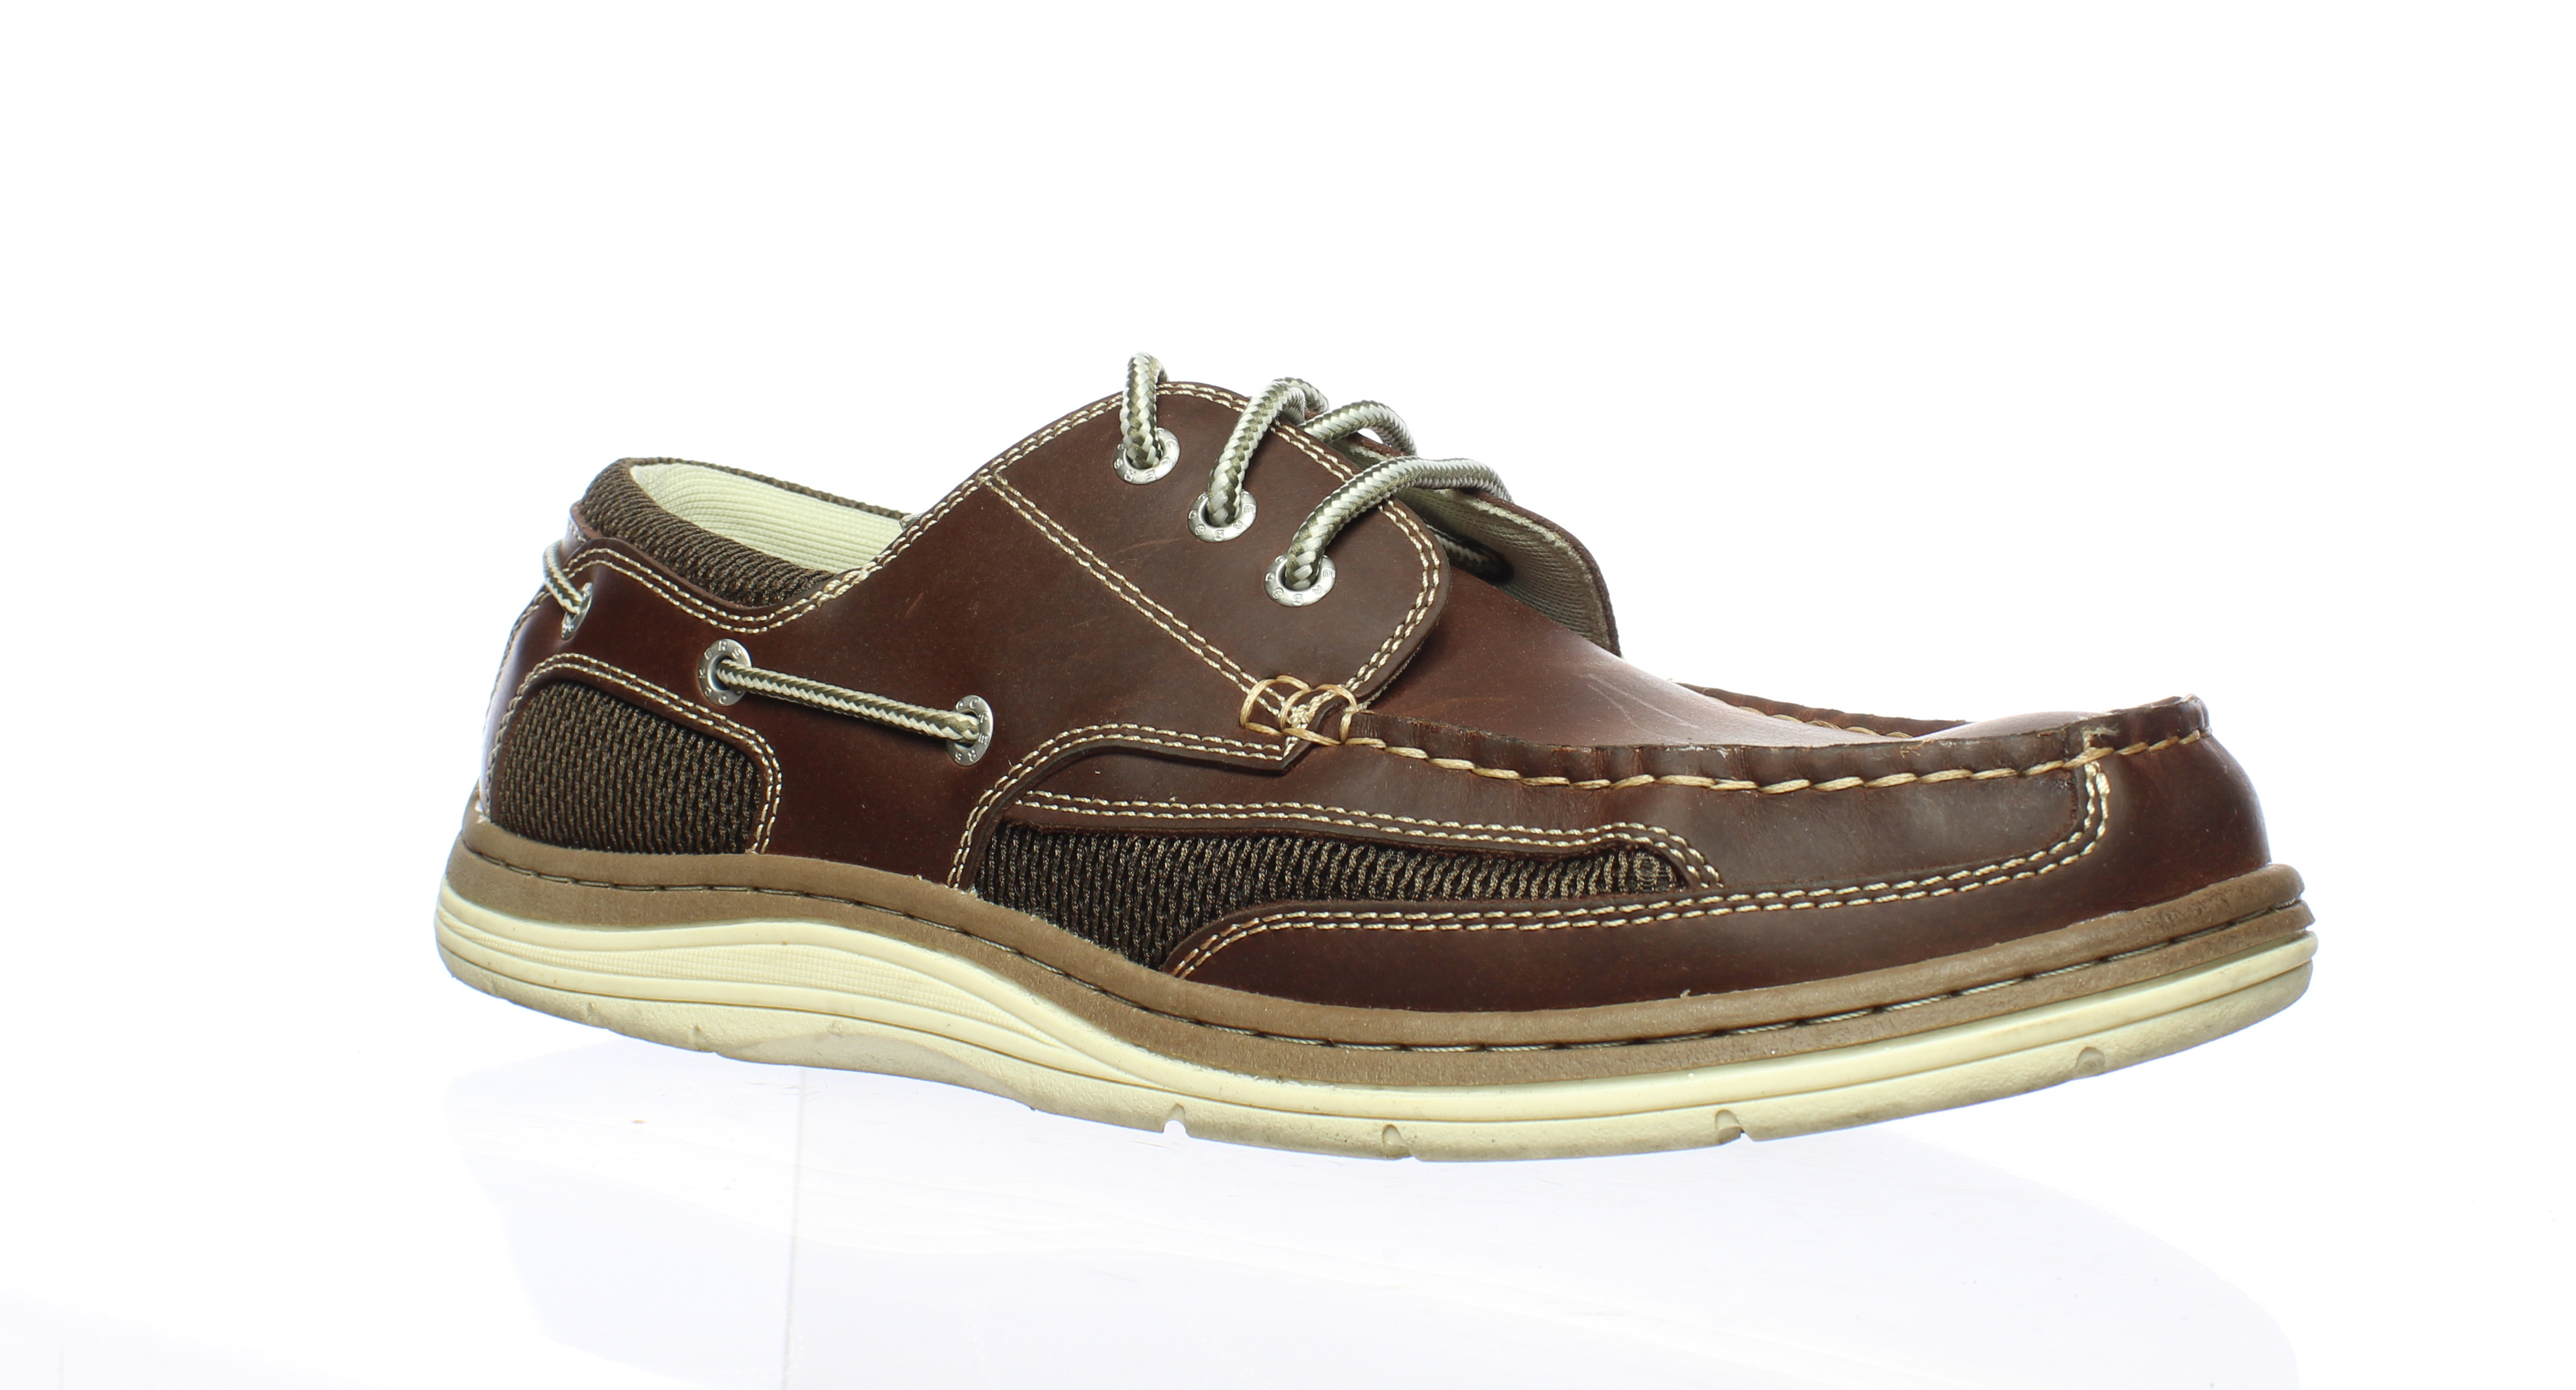 low priced the latest utterly stylish Details about Dockers Mens Lakeport Red/Brown Boat Shoes Size 10.5 (498400)